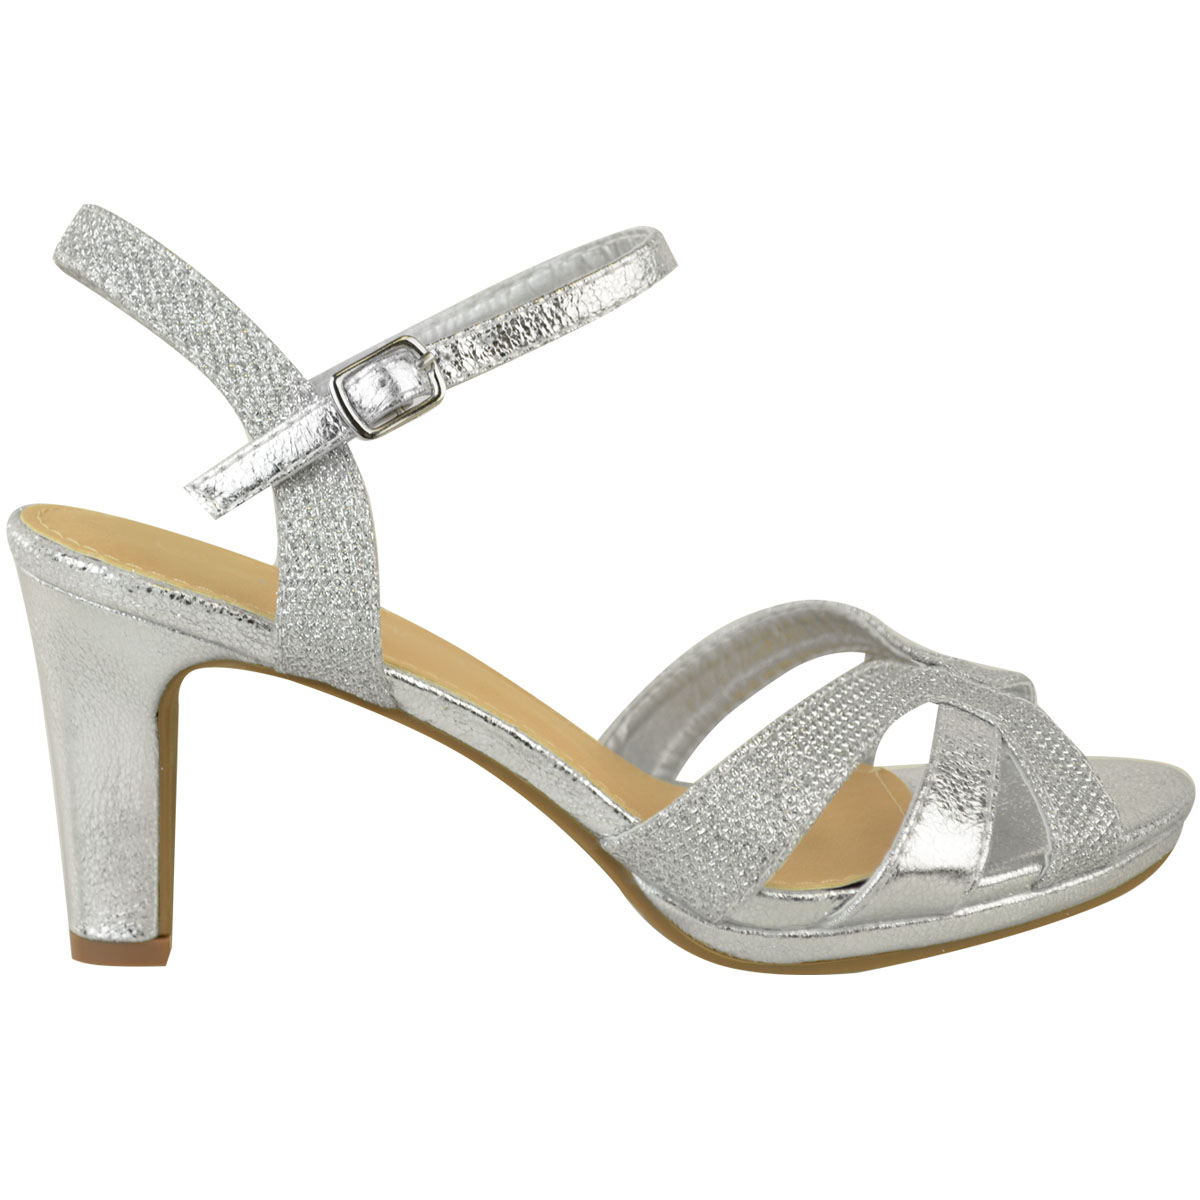 Details about Womens Ladies Mid Block Heel Strappy Sandals Wedding Glitter Bridal Party Size